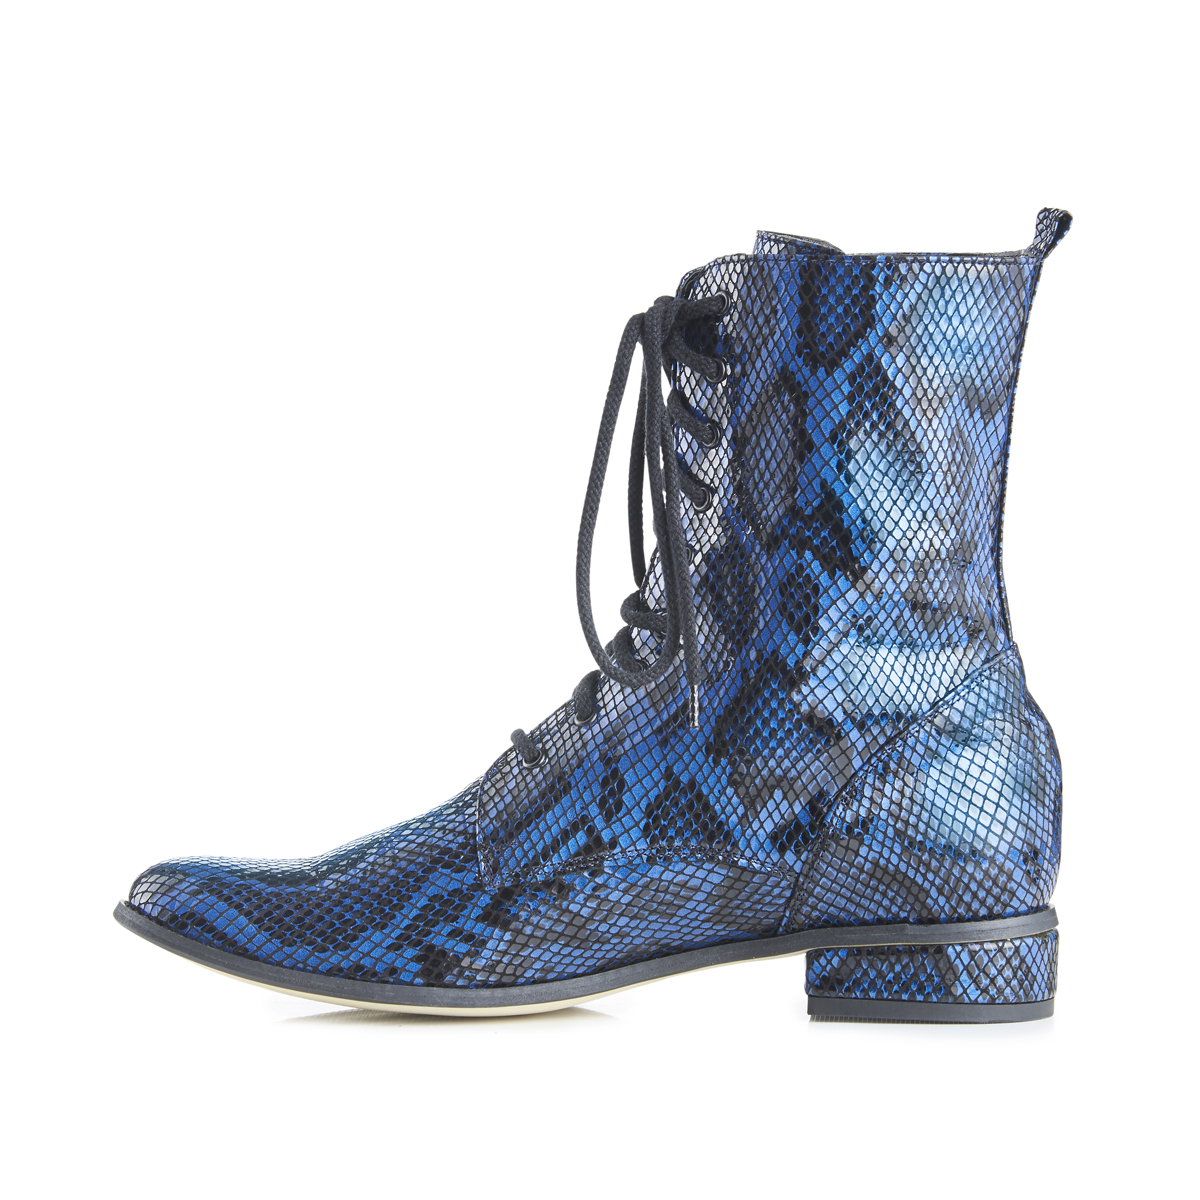 Yaga snake effect leather lace-up ankle boots - blue